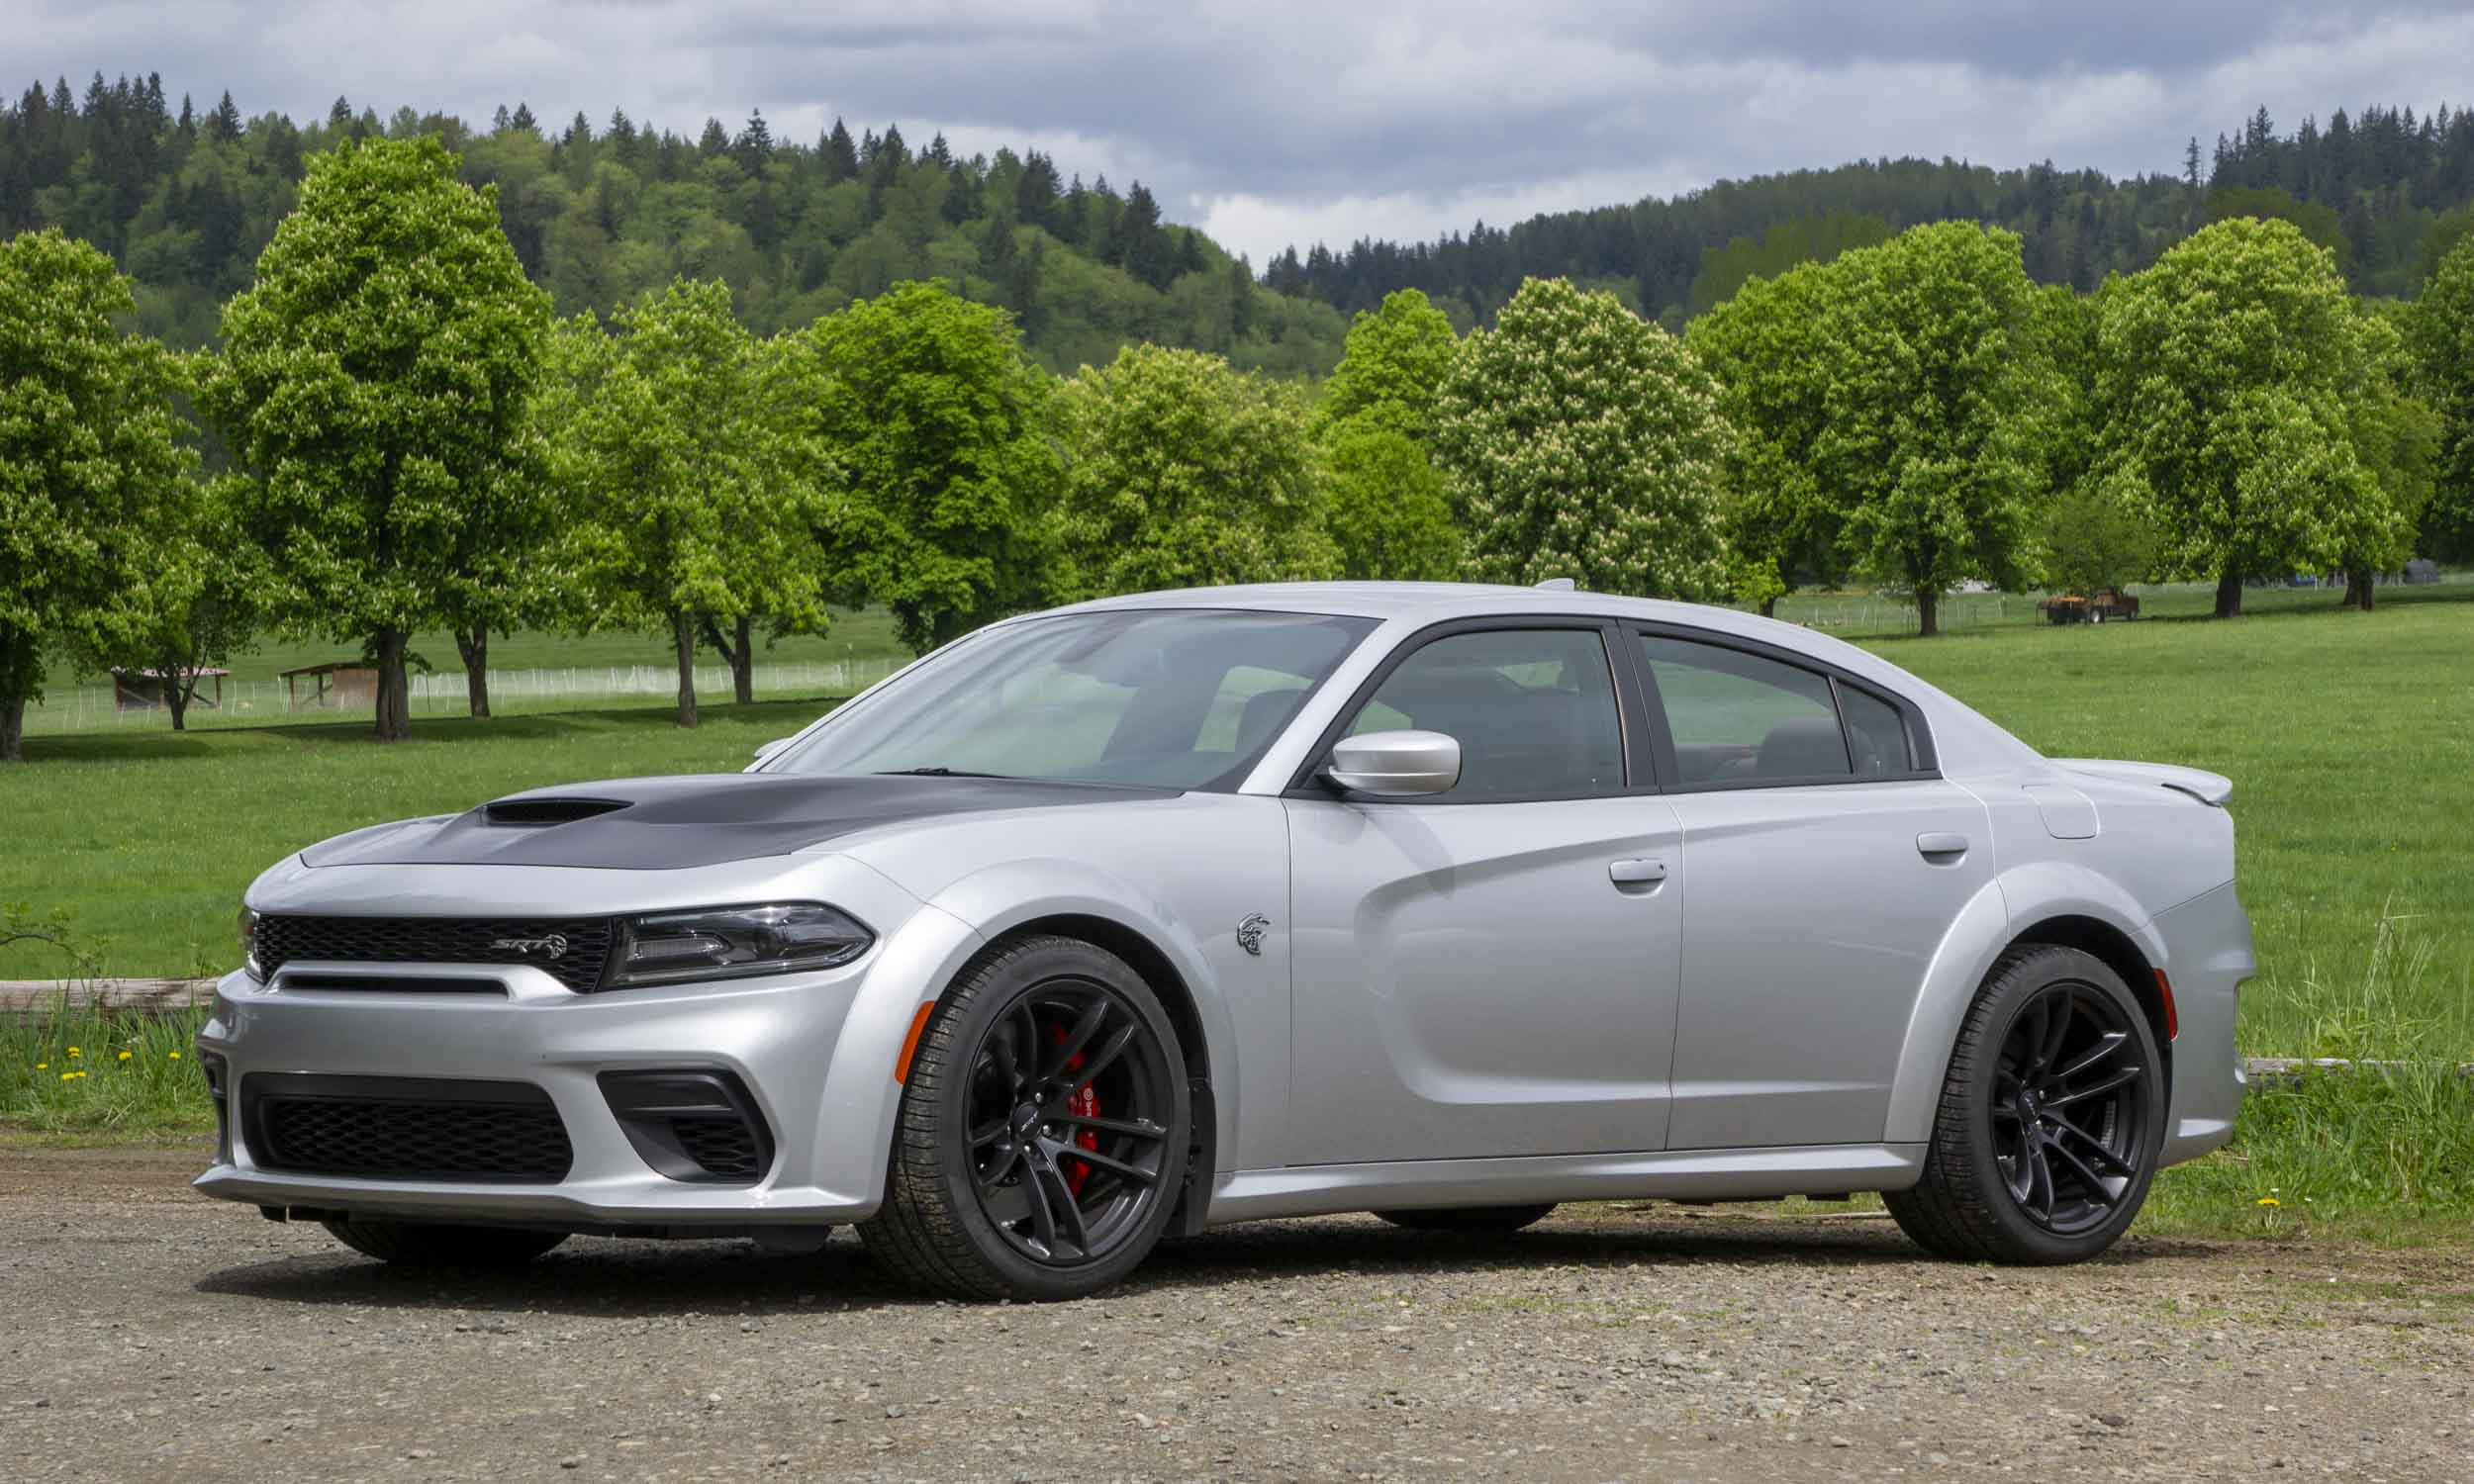 2020 Dodge Charger Srt Hellcat Widebody Review Autonxt